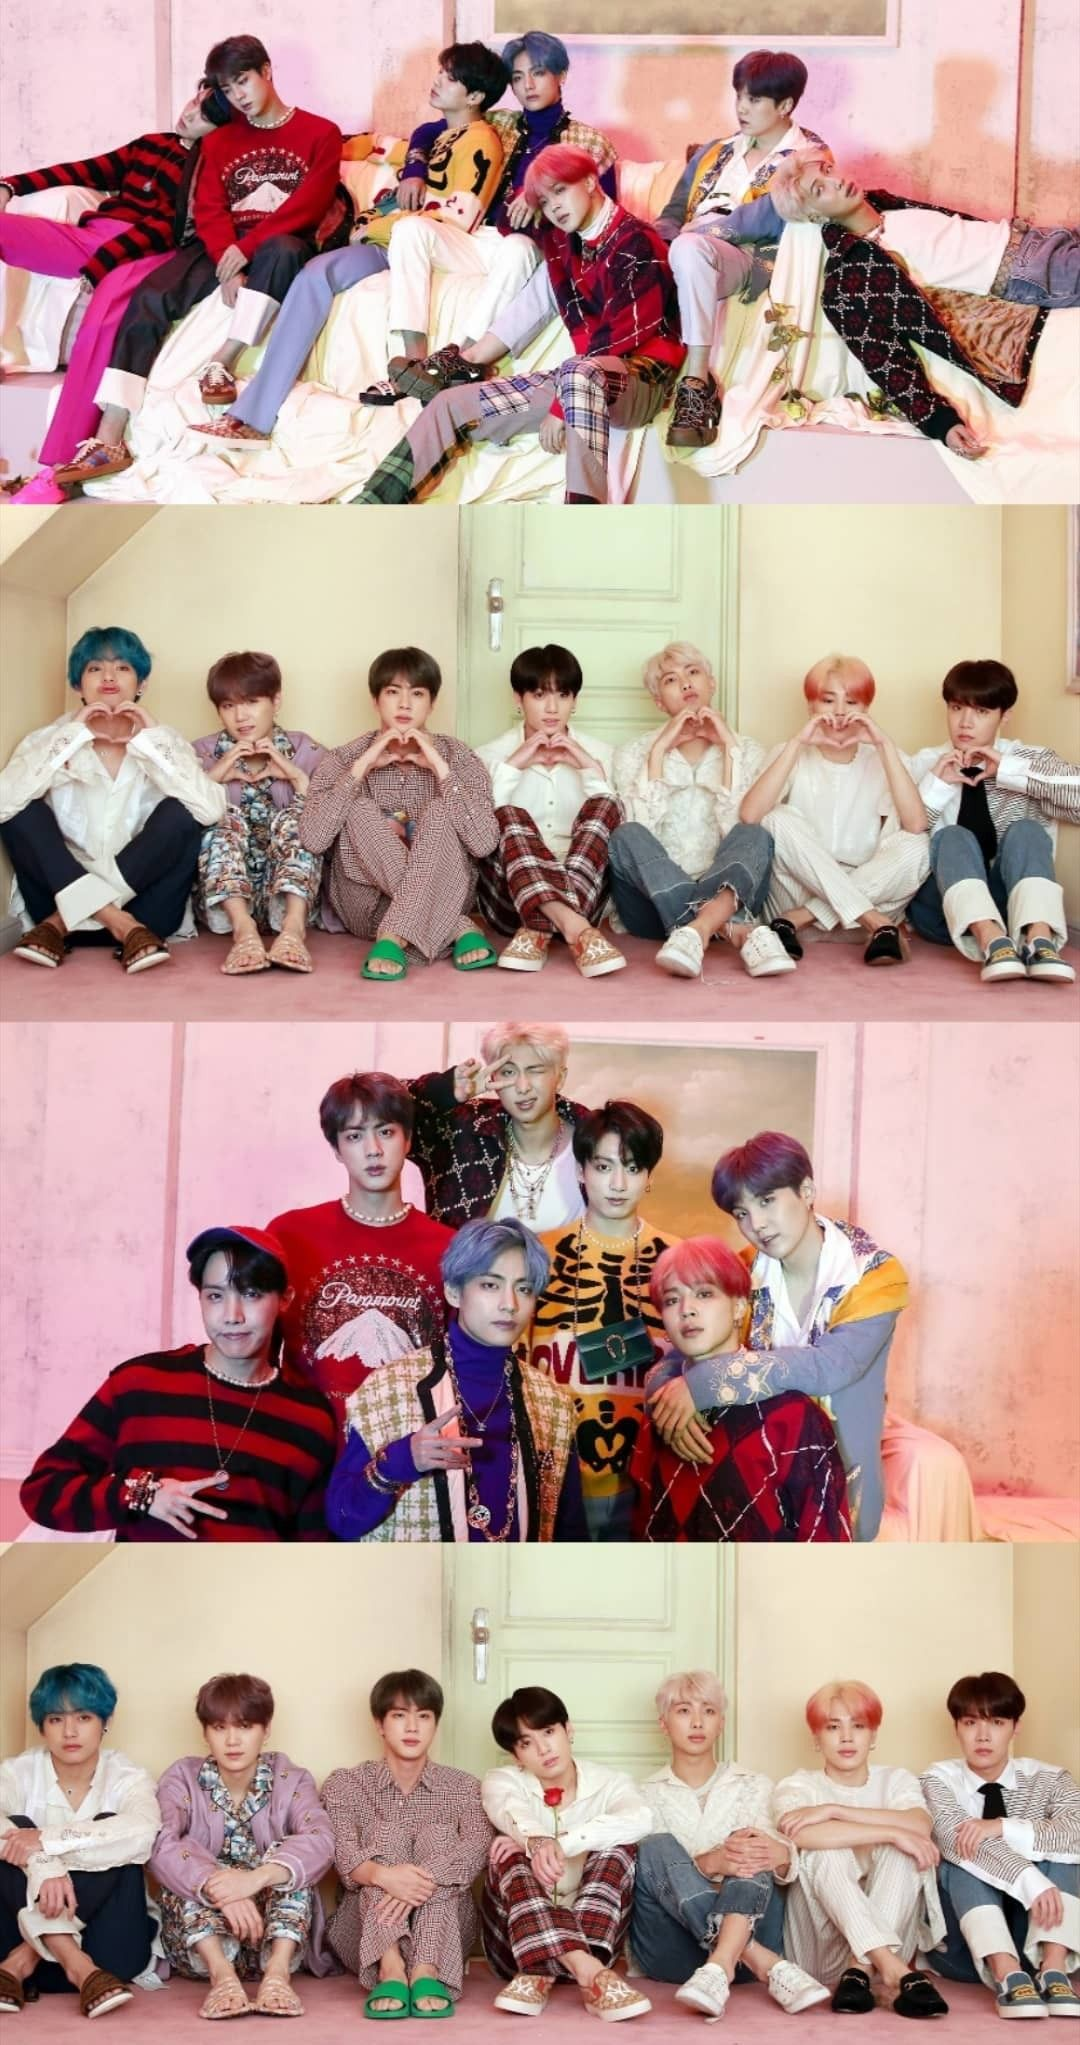 Bts Boy With Luv With Images Bts Boys Bts Wallpaper Bts Bts wallpaper hd boy with luv